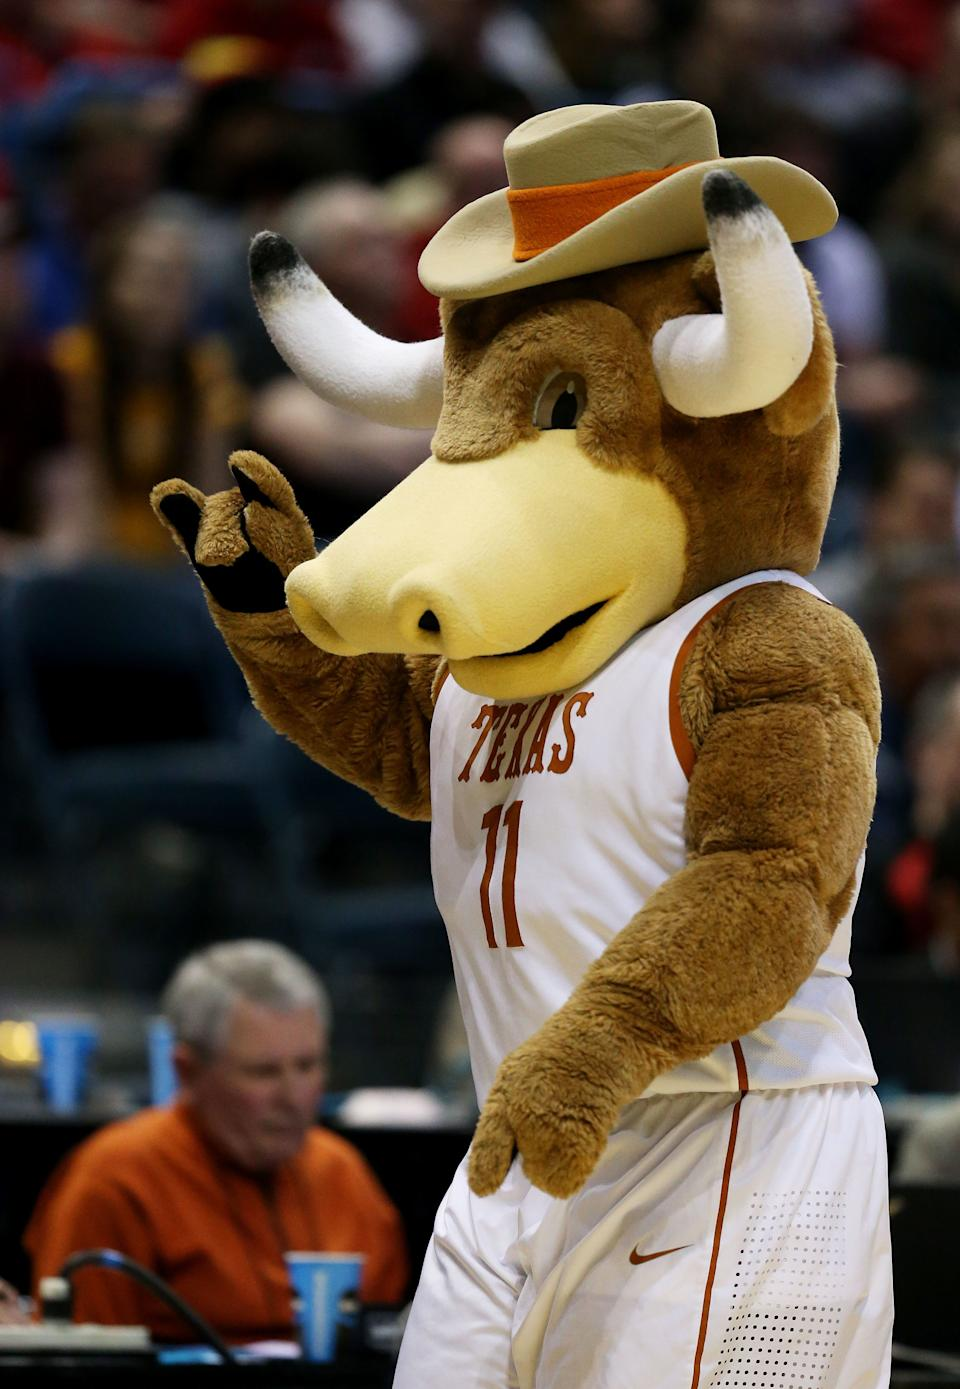 MILWAUKEE, WI - MARCH 20:  Texas Longhorns mascot Bevo looks on in the second half against the Arizona State Sun Devils during the second round of the 2014 NCAA Men's Basketball Tournament at BMO Harris Bradley Center on March 20, 2014 in Milwaukee, Wisconsin.  (Photo by Jonathan Daniel/Getty Images)